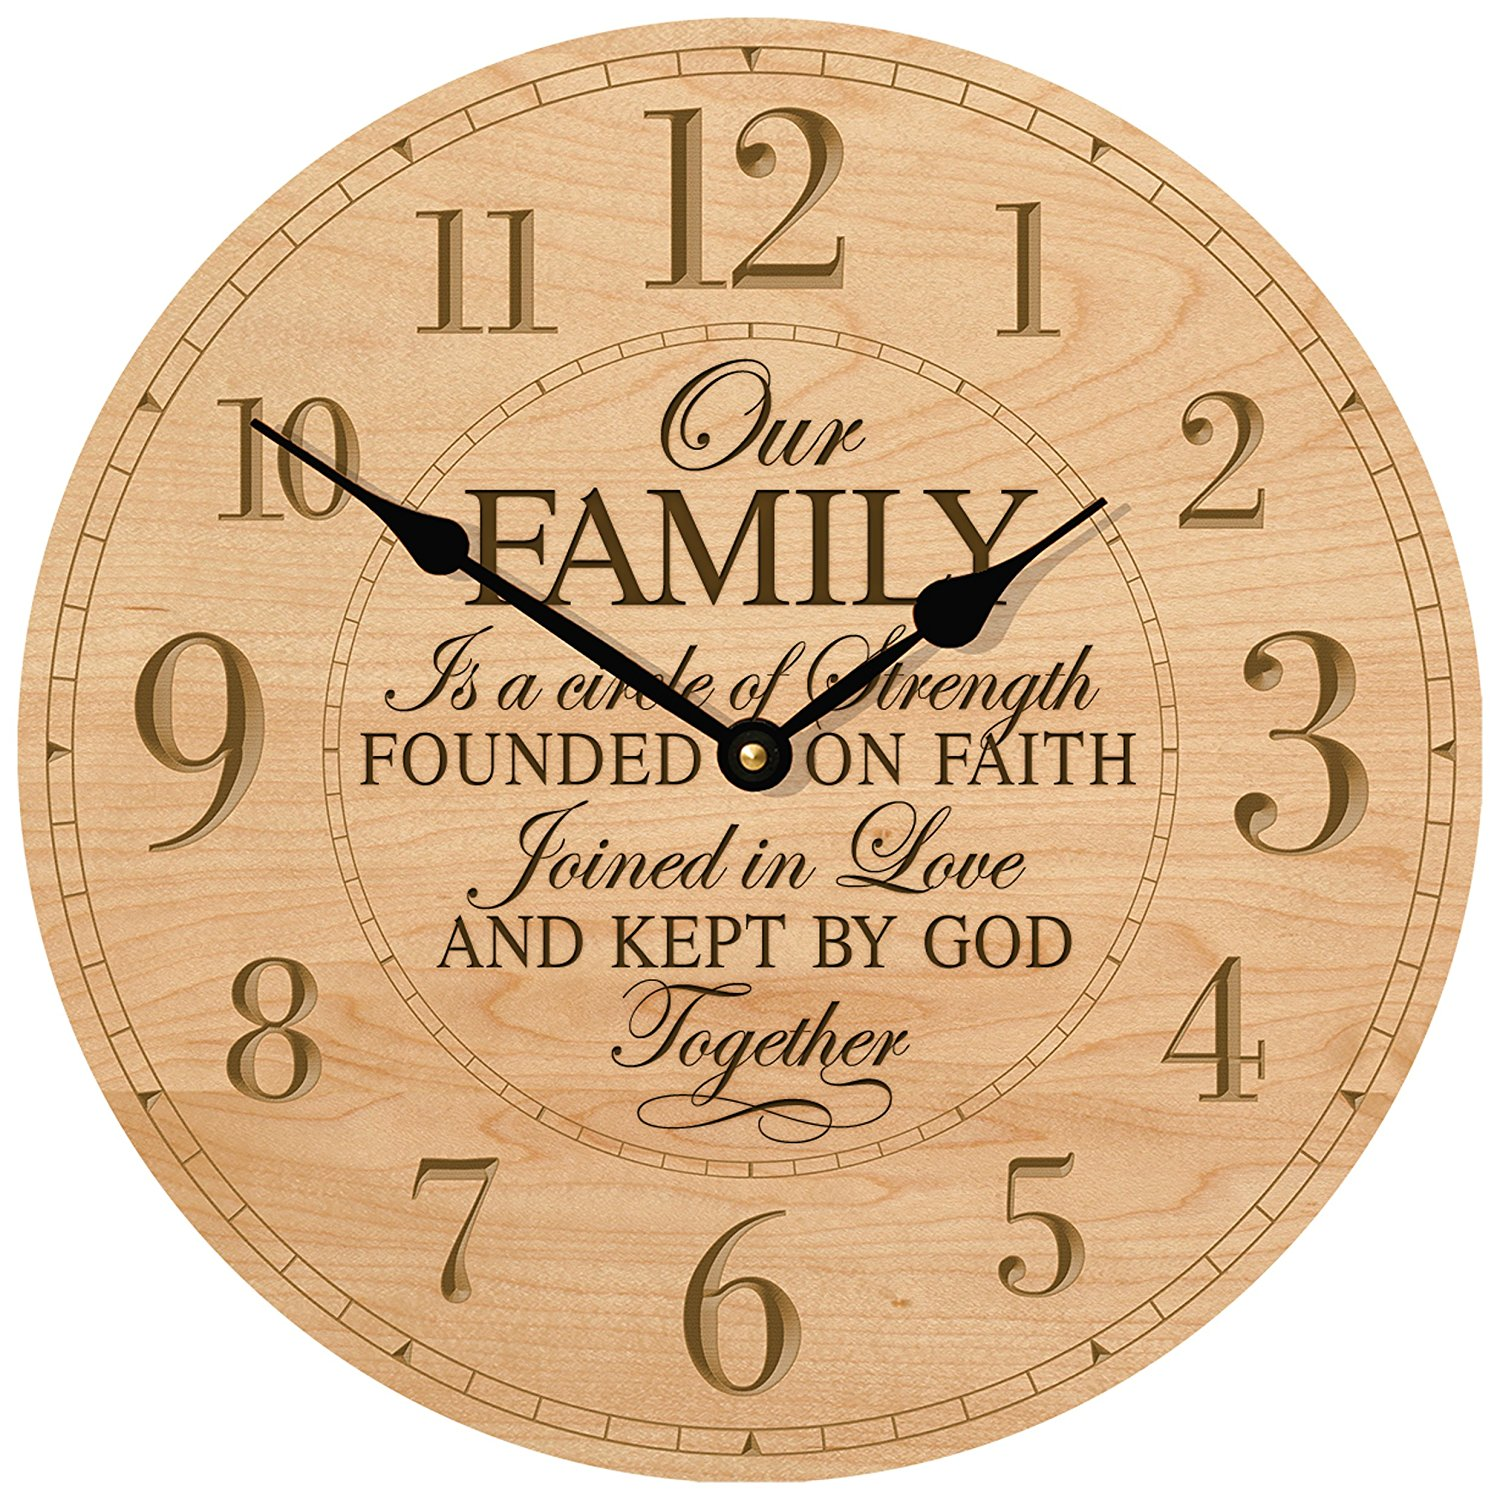 """Wedding Anniversary Gifts for parents Modern Decorative Desk or Wall Clock Housewarming Anniversary Gift ideas for Couple Our Family is a circle of Strength 12""""x12"""" By Dayspring Milestones (Maple)"""